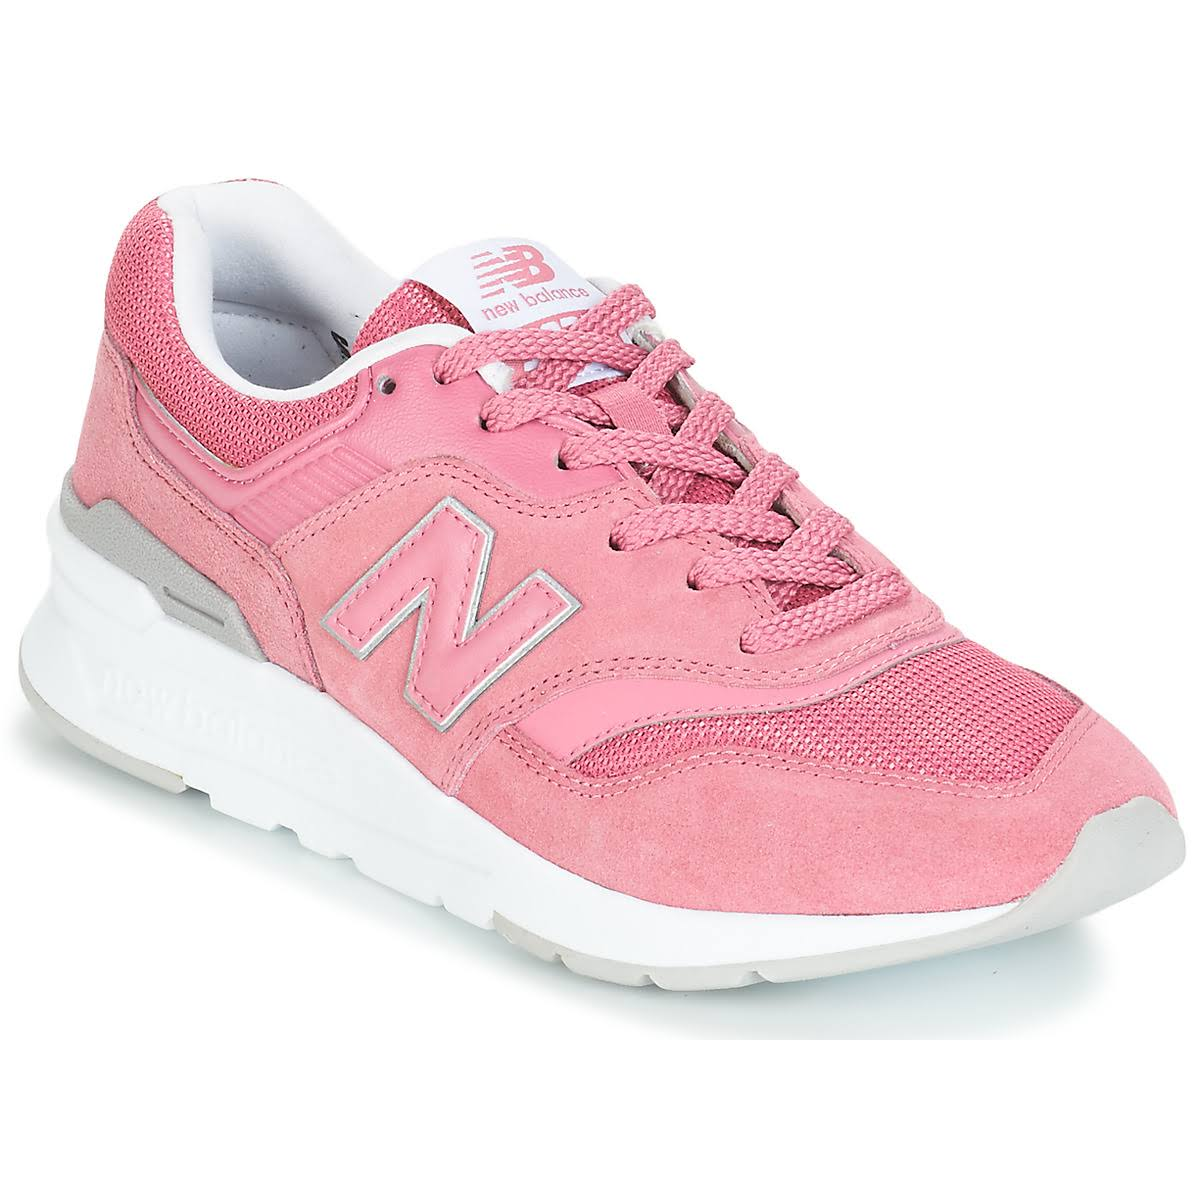 Lage Rose New Balance SneakersdamesMineral Cw997 7bf6yYg